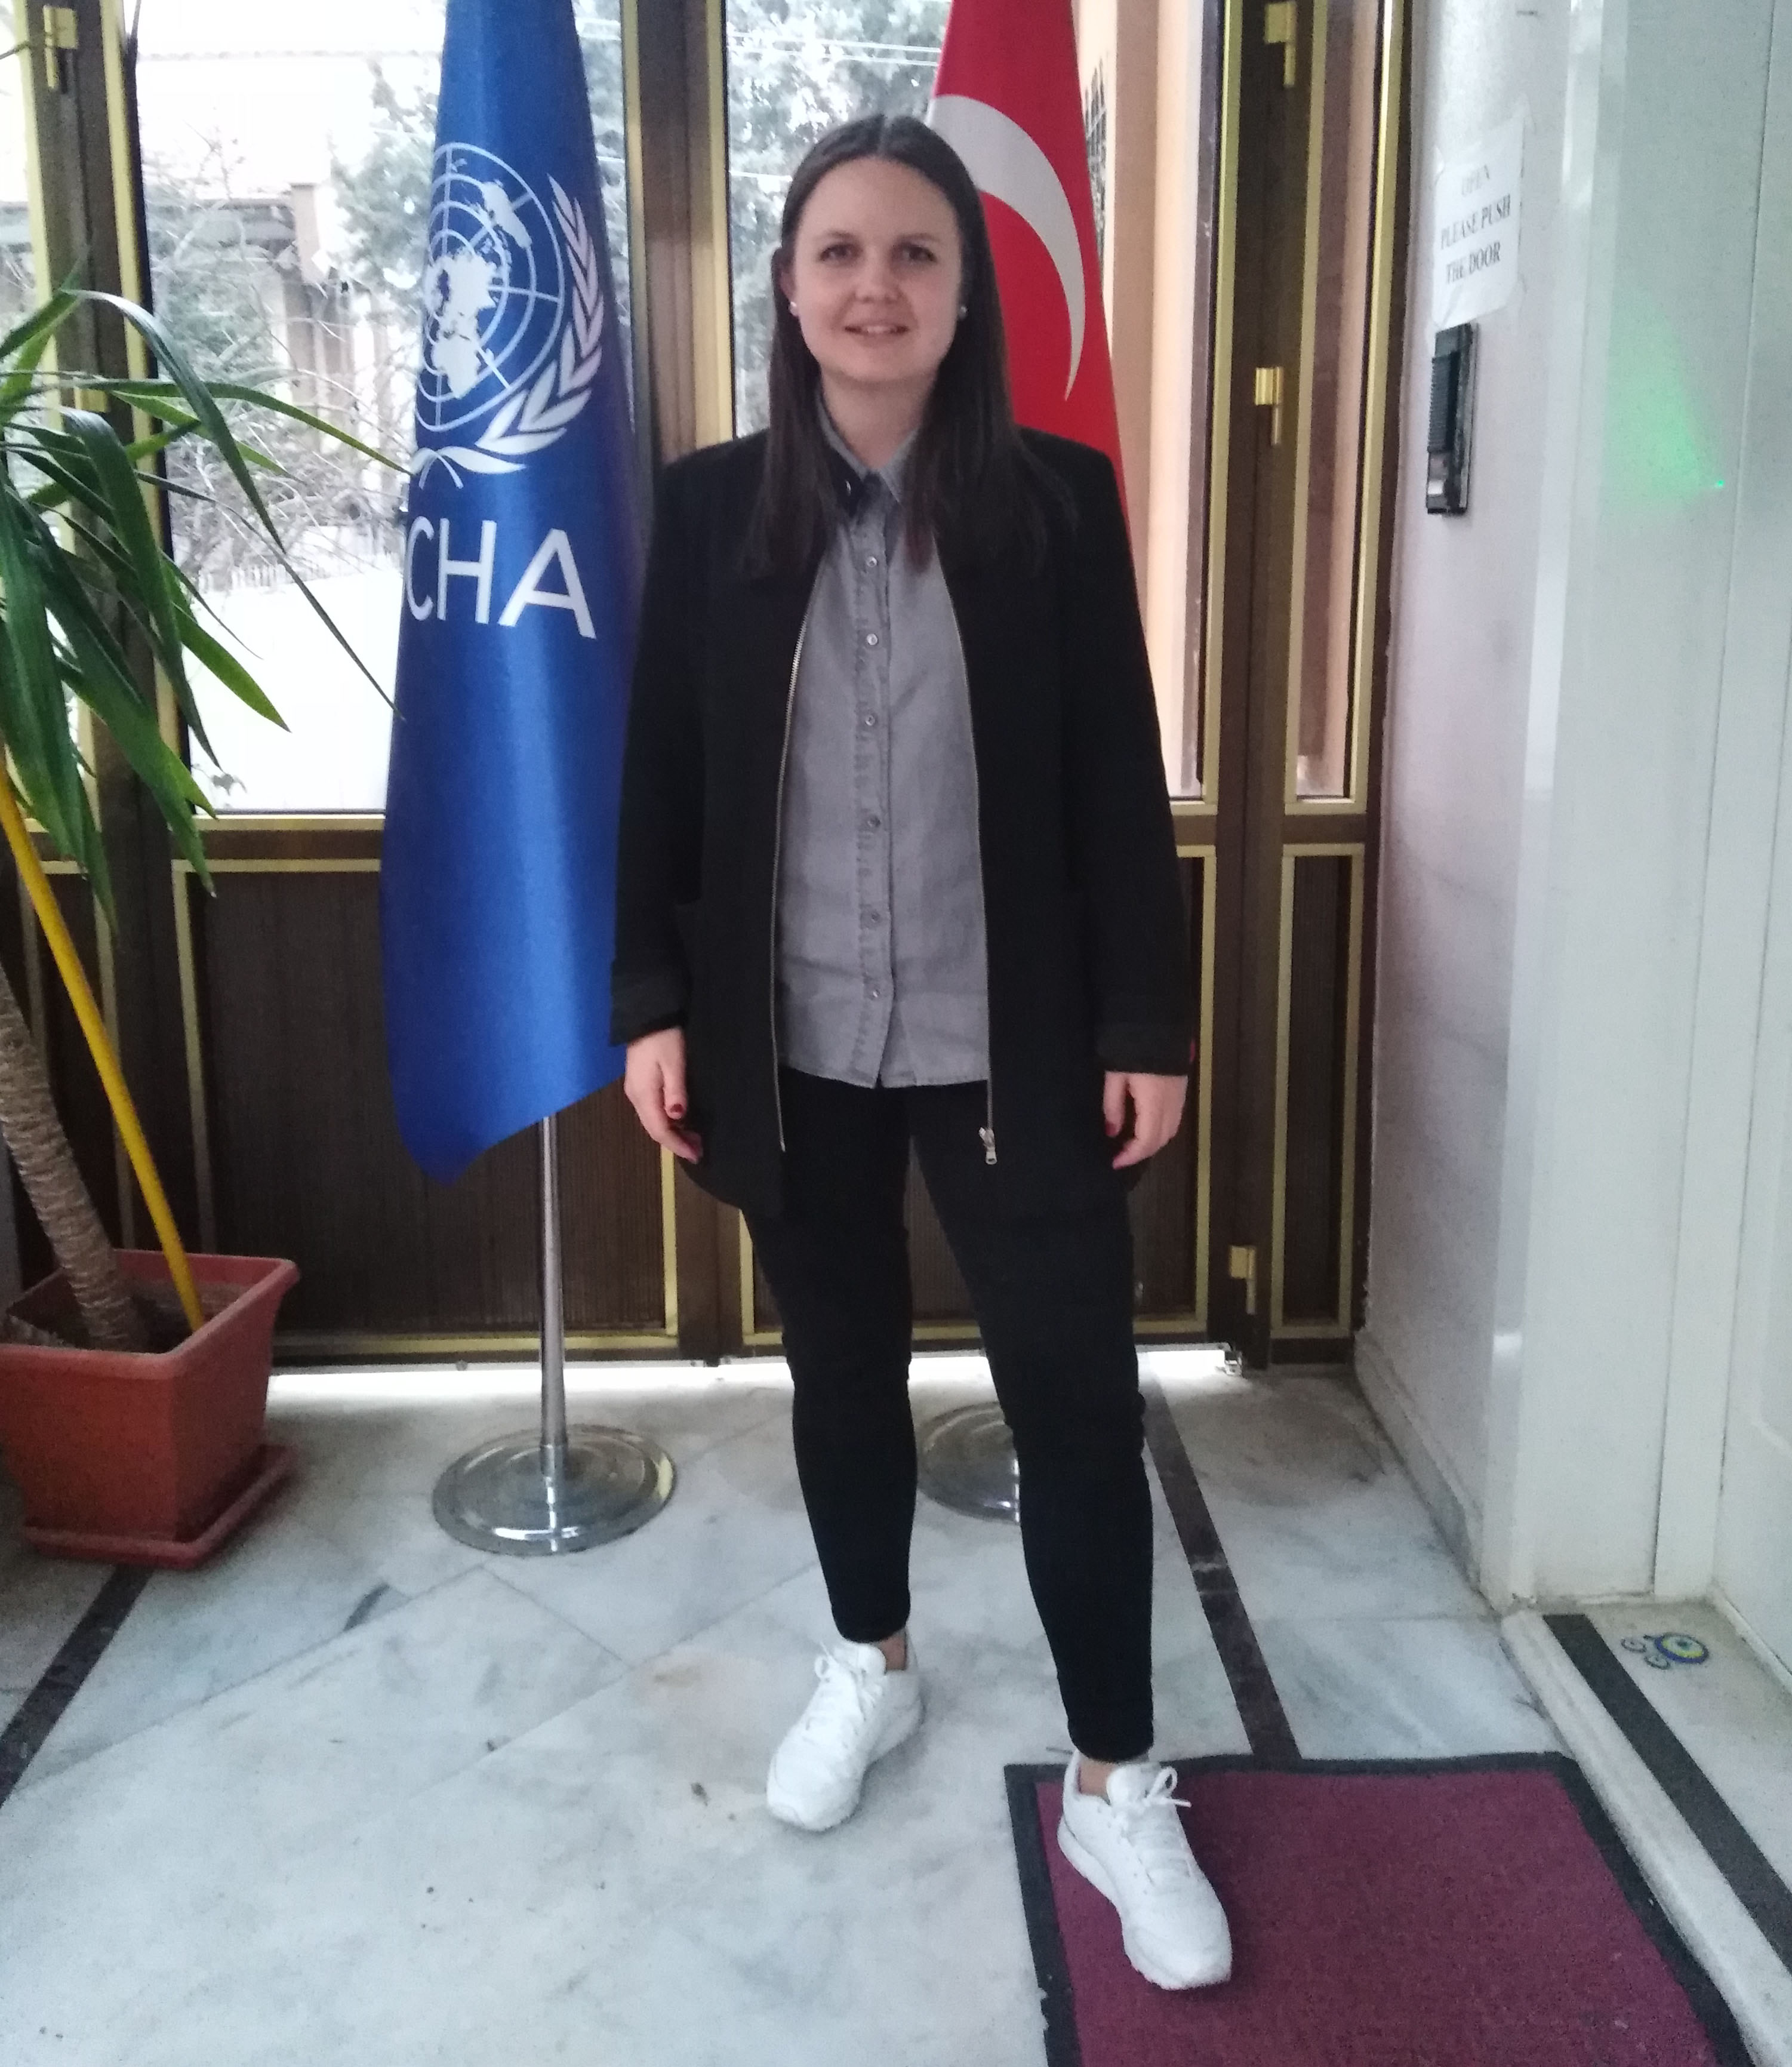 Photo of Rebecca Lindqvist standing in front of the flags of UN OCHA and Turkey